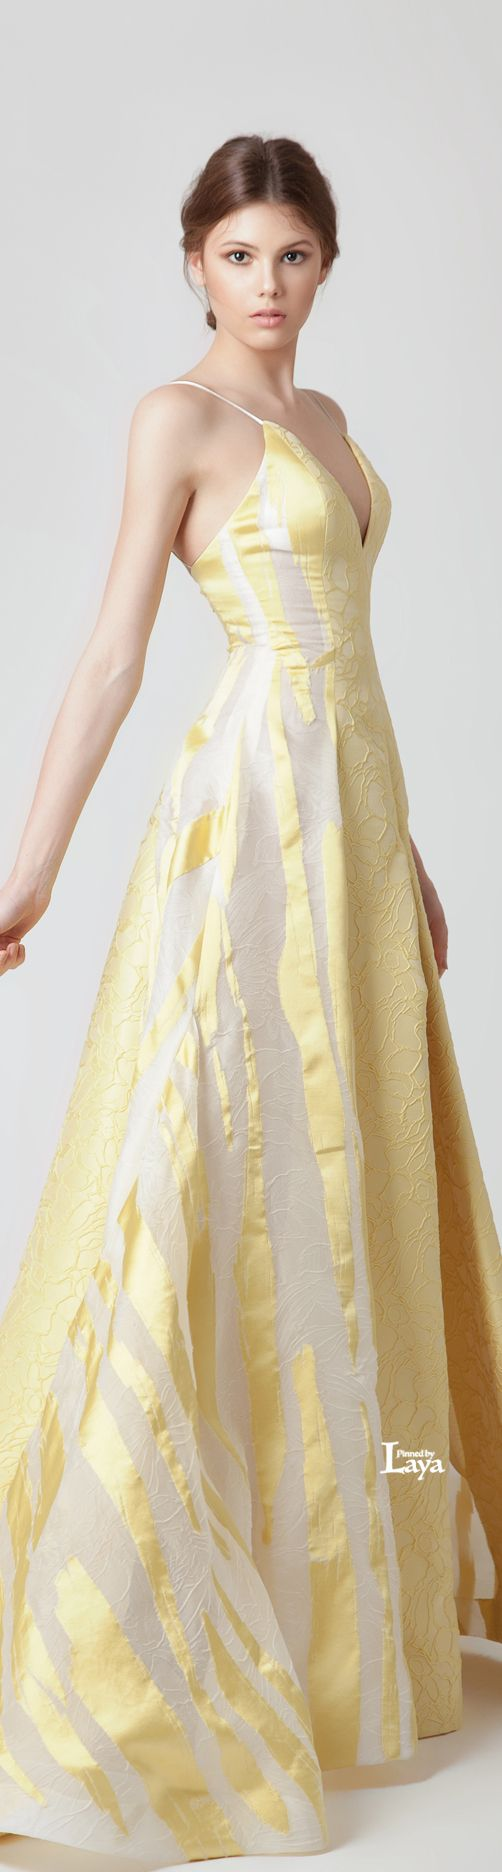 ♔LAYA♔JEAN LOUIS SABAJI S/S 2015 COUTURE♔.... if this came in a different colour it would be so much better